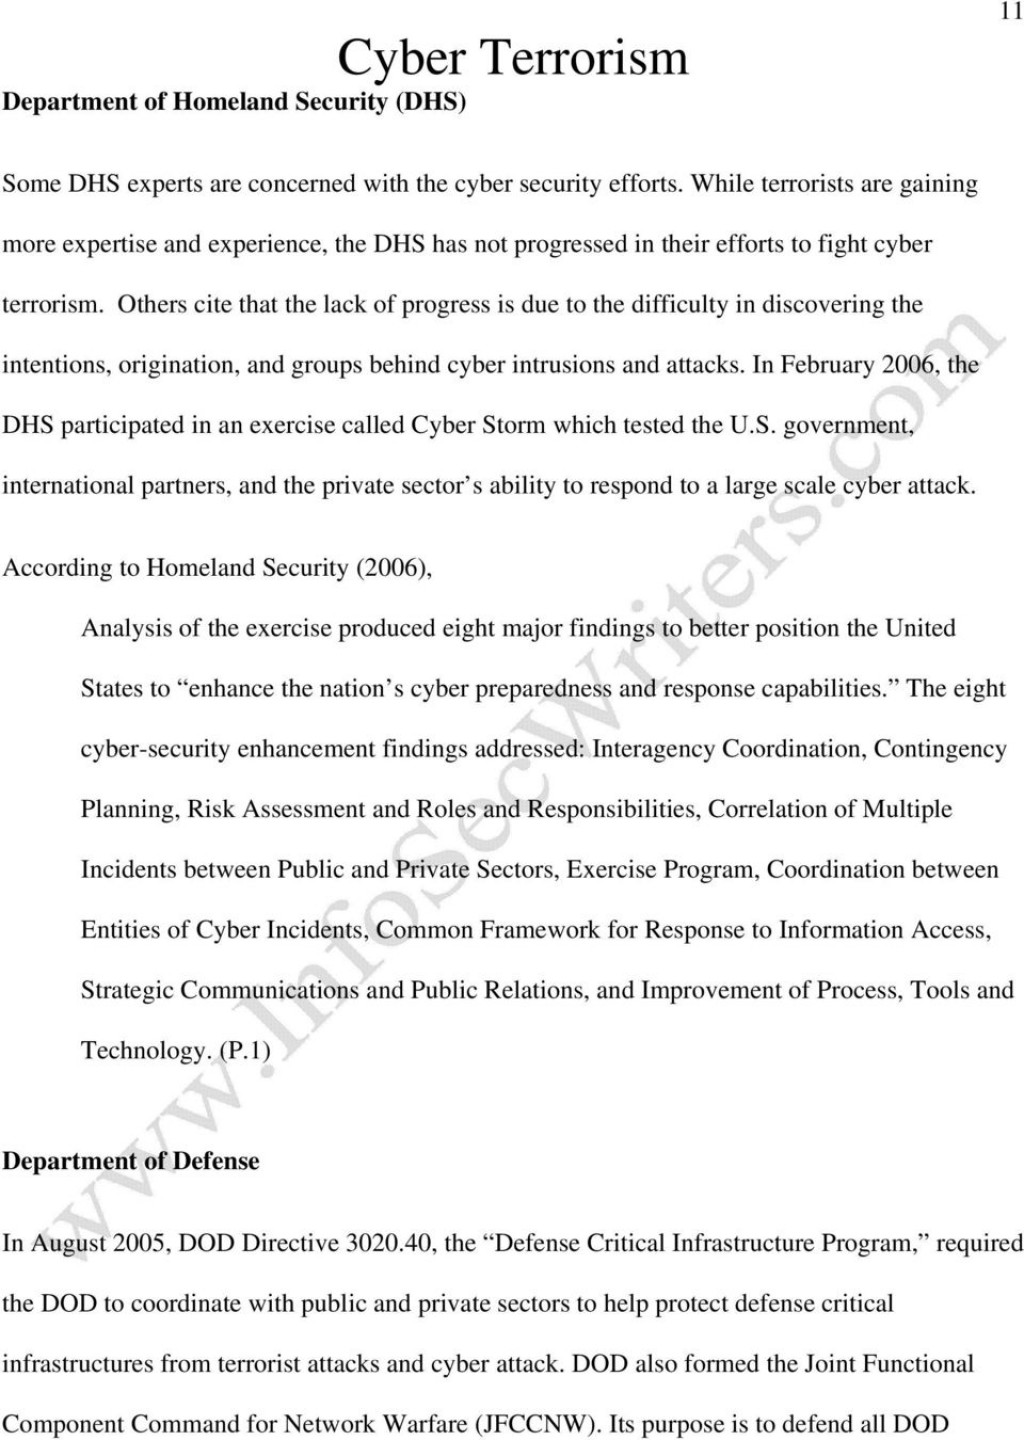 017 Cyber Terrorism Essay Research Paper Page 11 Imposing Large